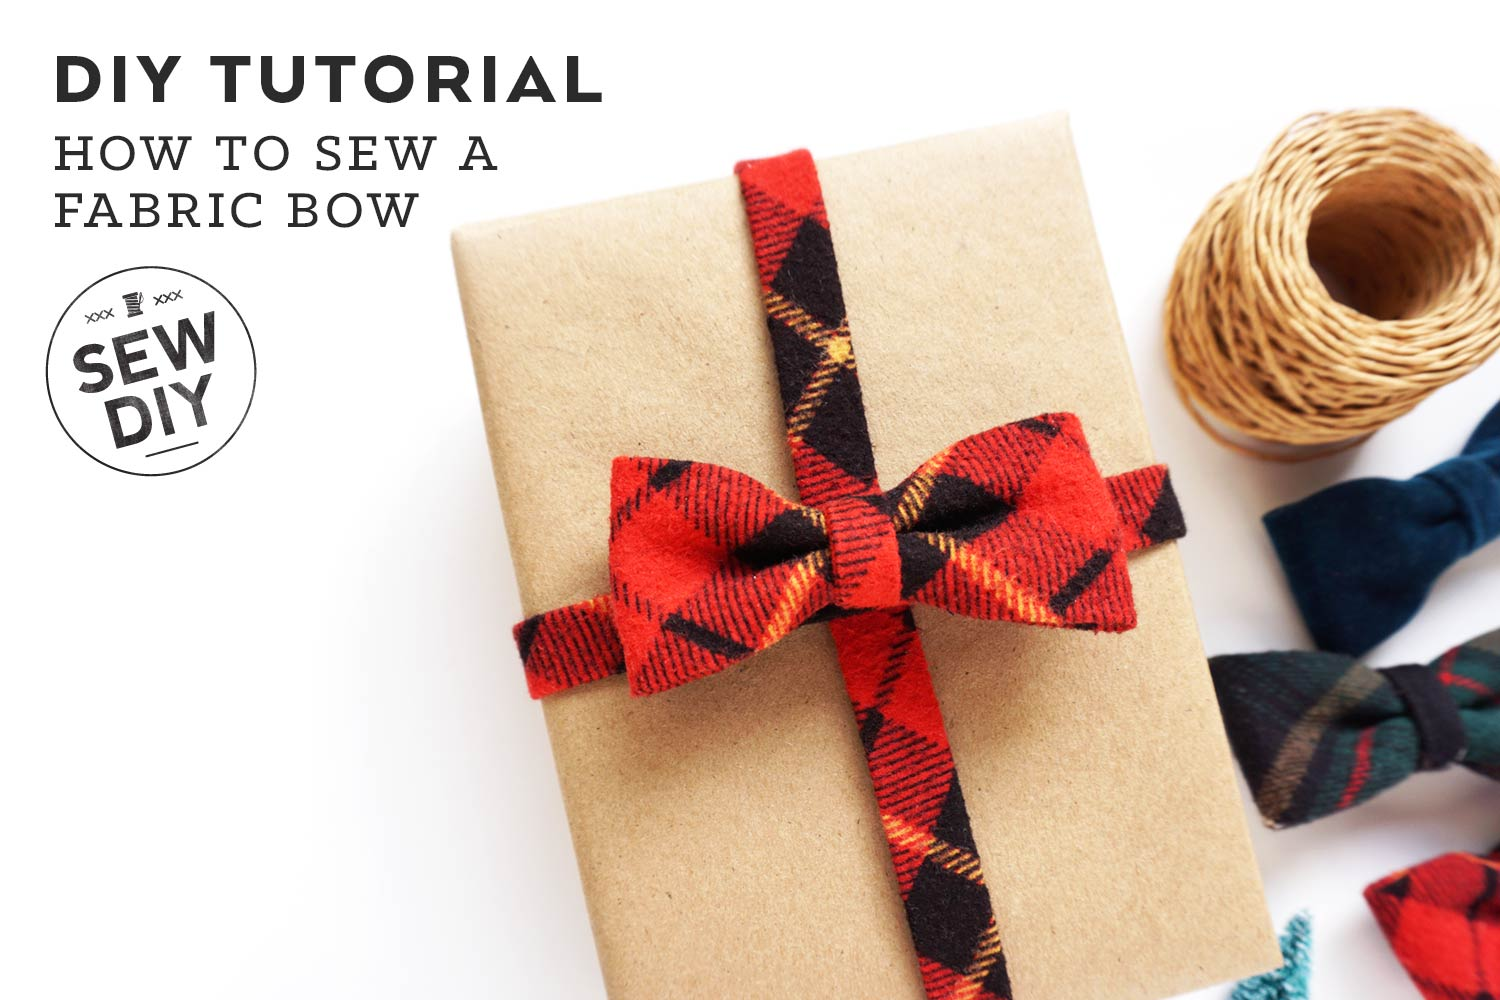 How to Sew a Fabric Bow Tutorial | Sew DIY